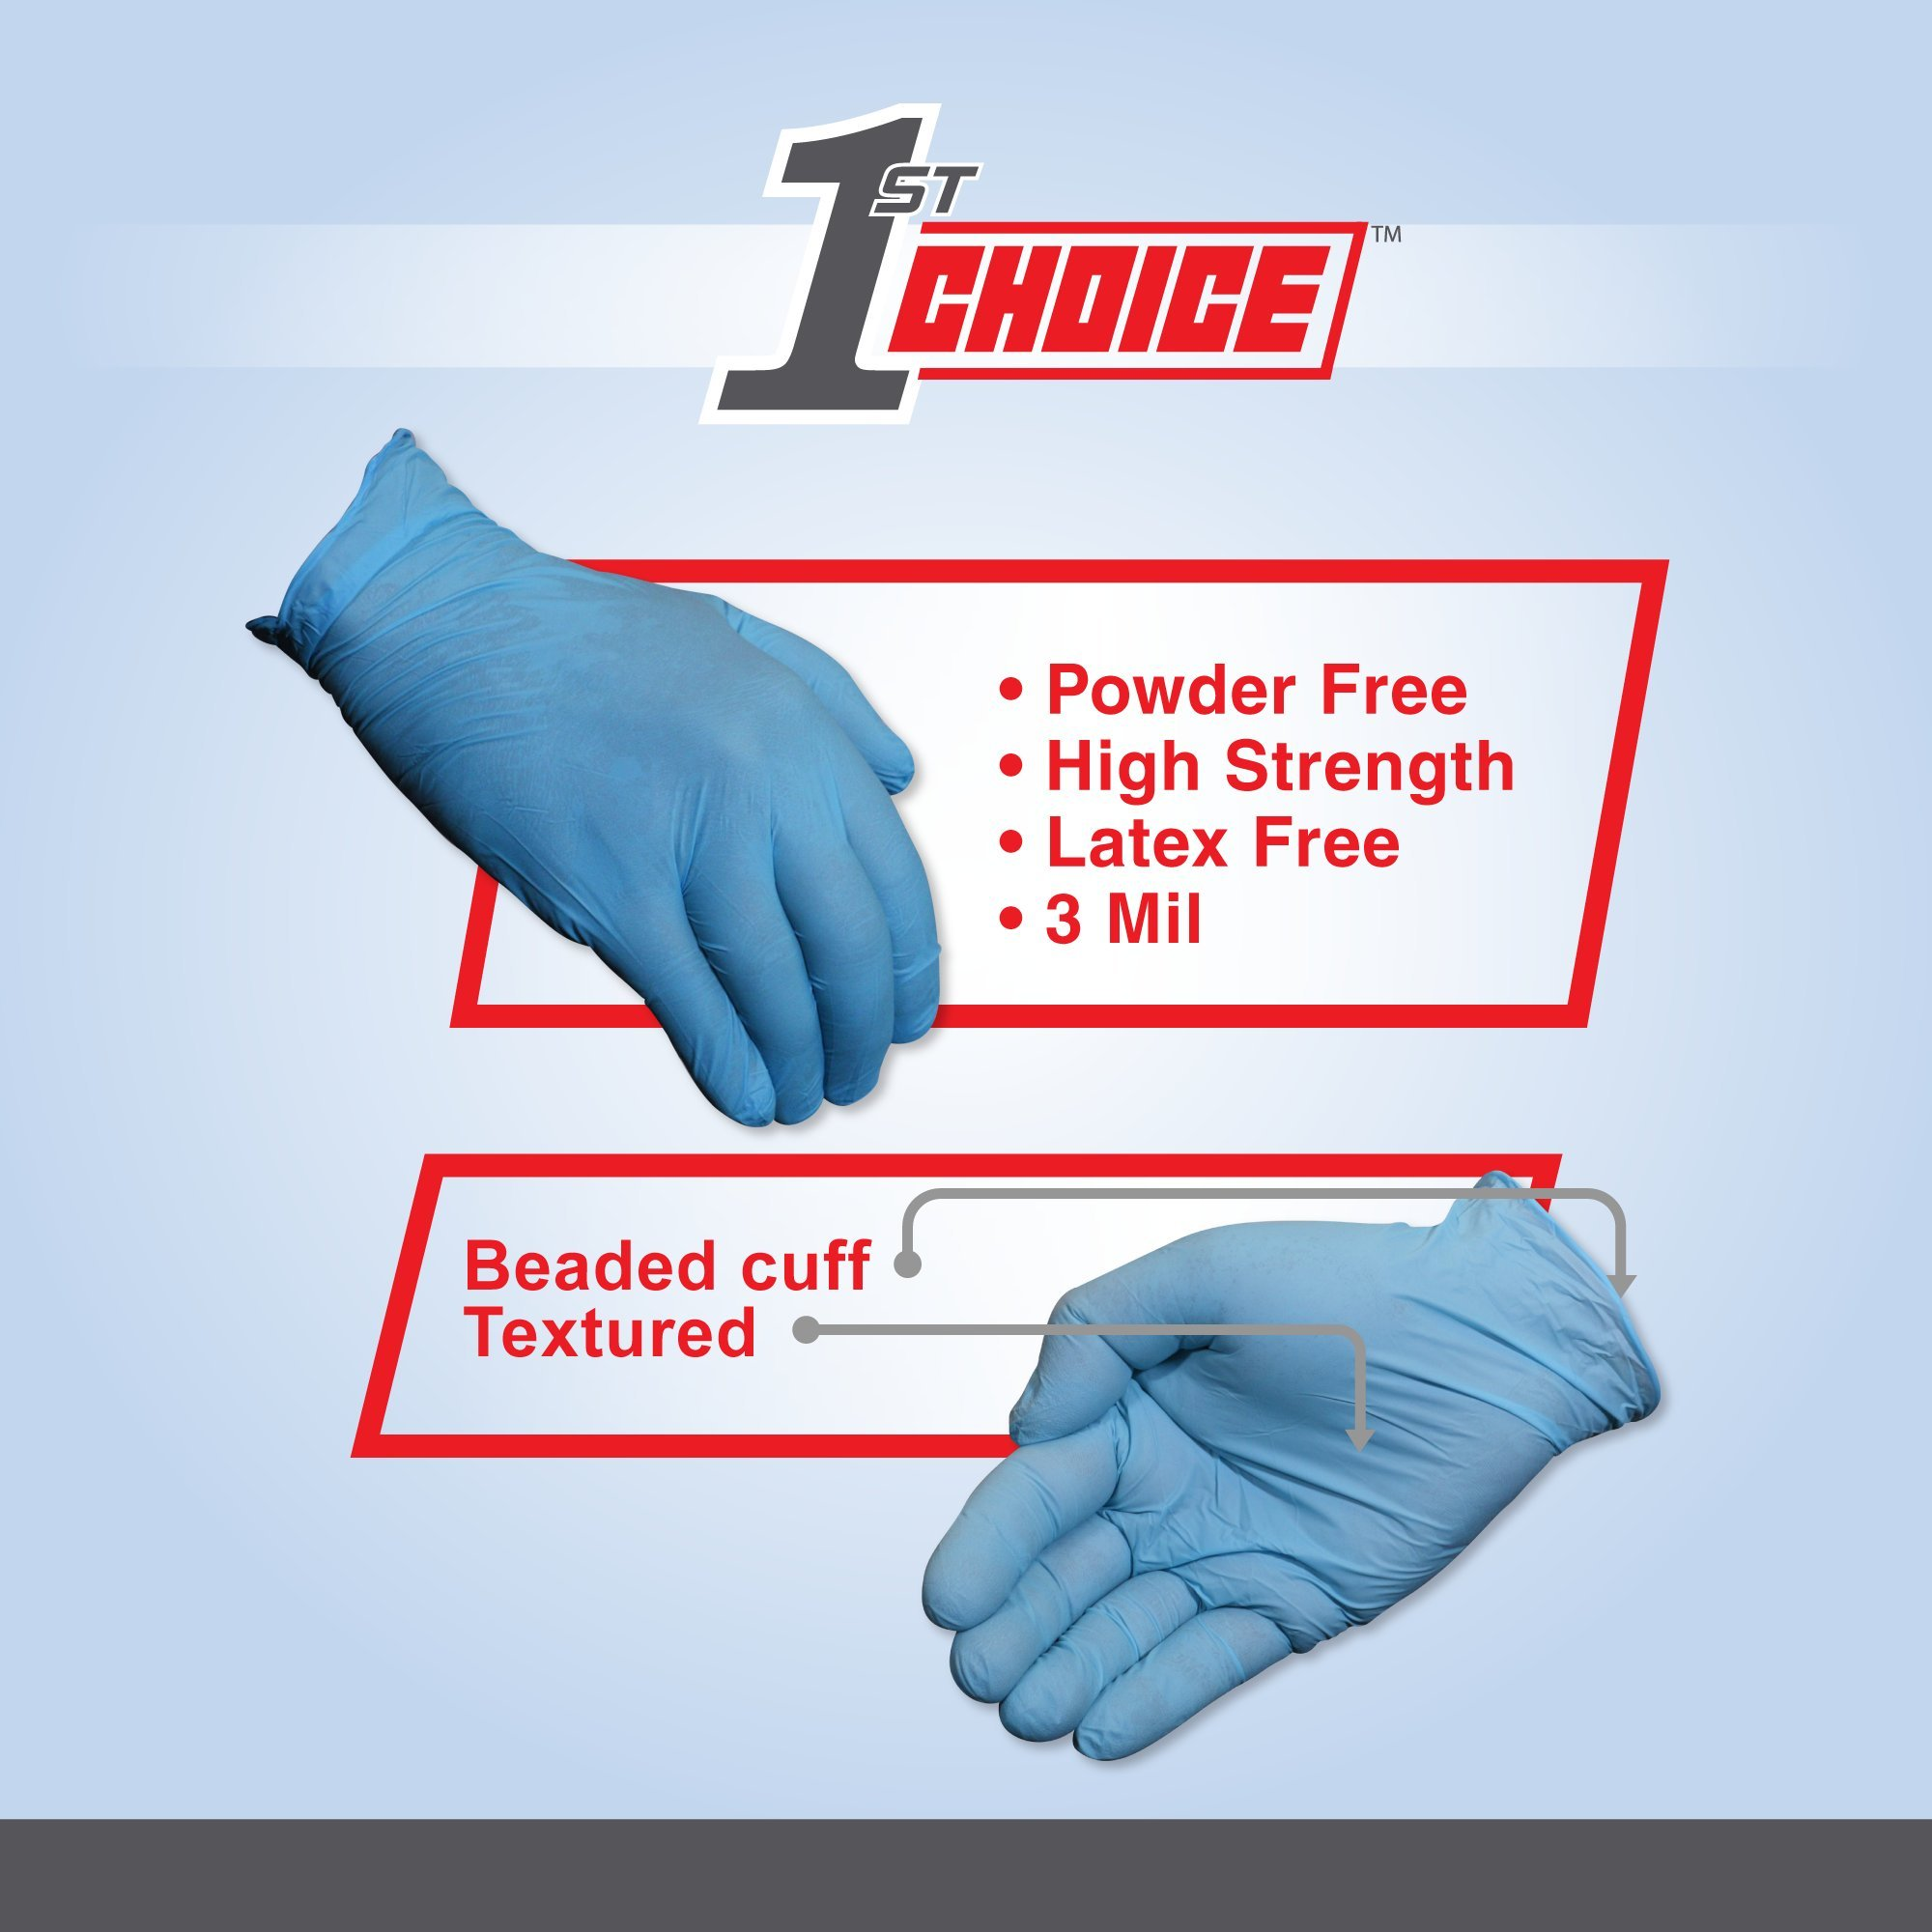 1st Choice Blue Nitrile 3 Mil Thick Disposable Gloves, Medium, Case of 1000 - Industrial Grade, Latex-Free by 1ST CHOICE (Image #3)